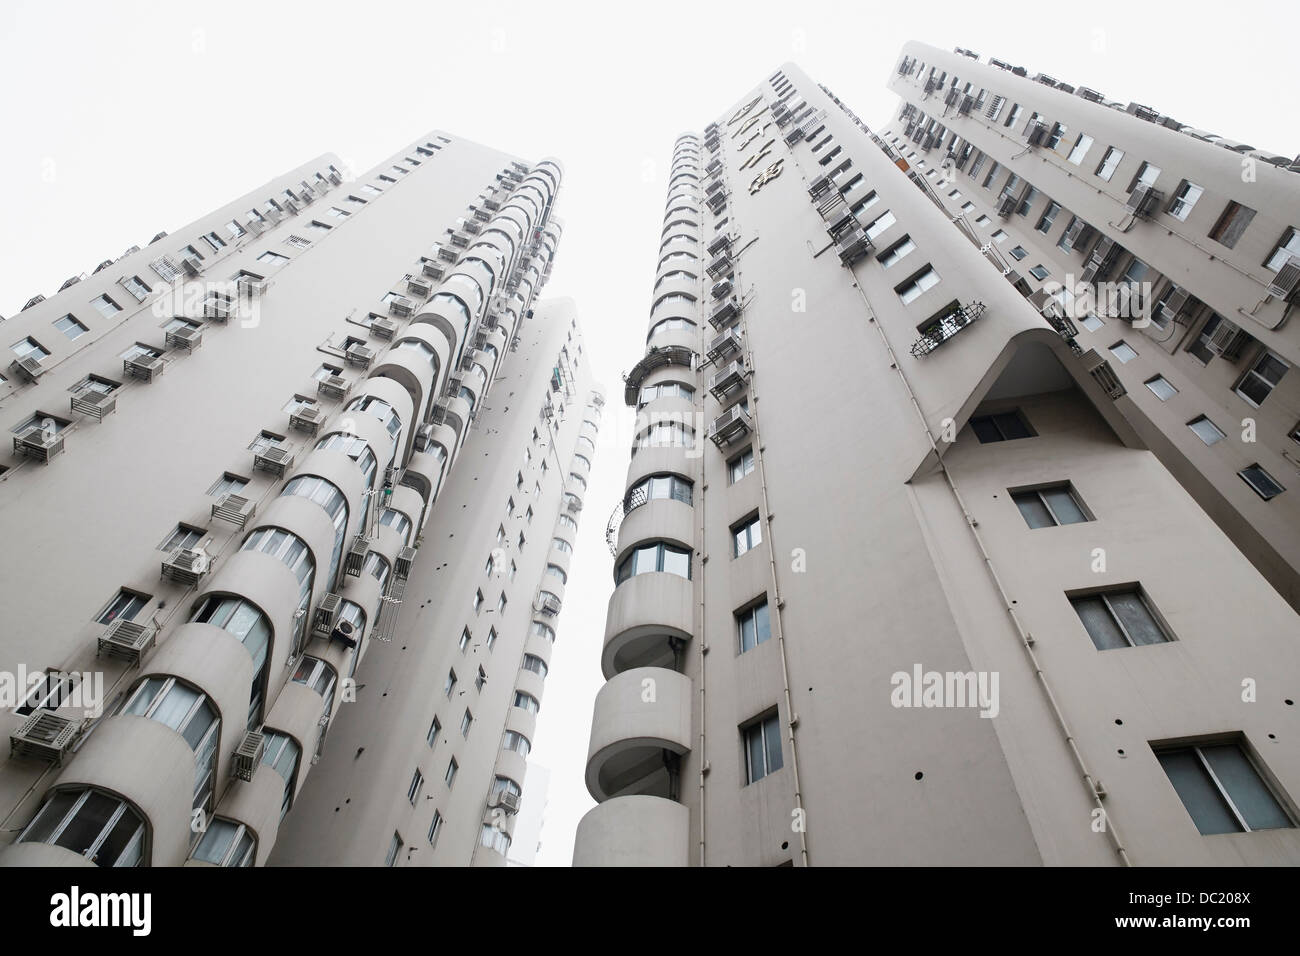 Low angle view of skyscraper, Shanghai, China - Stock Image